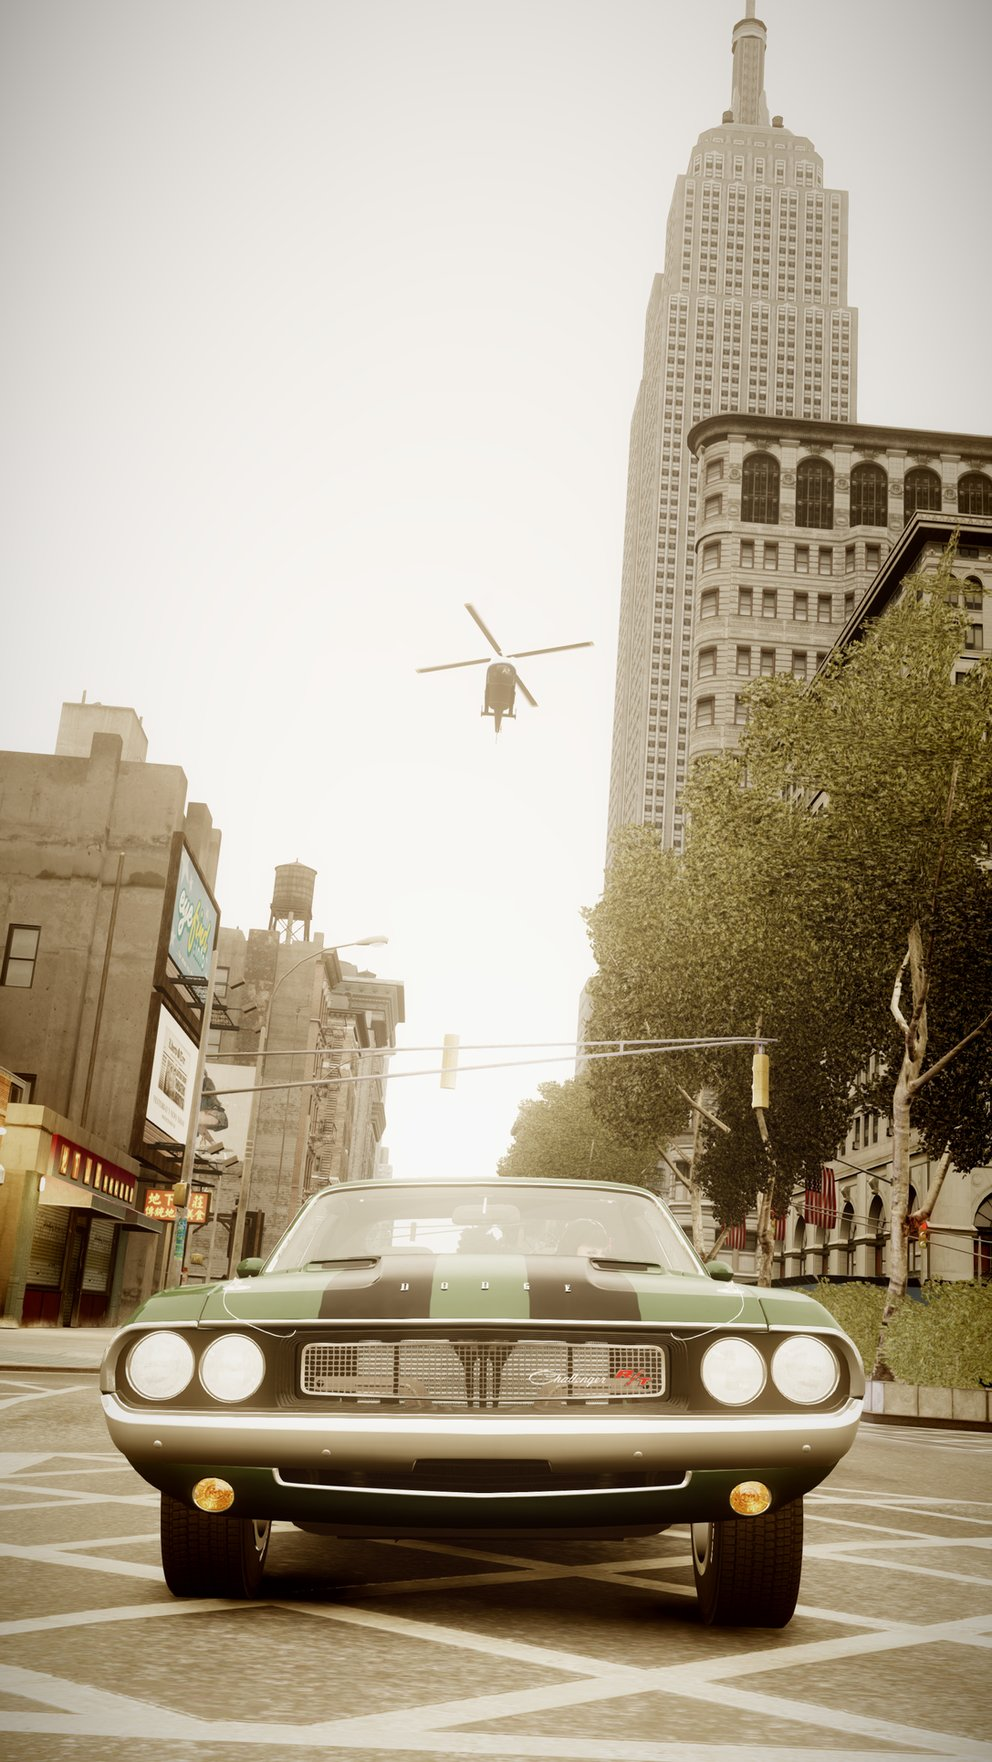 GTA-Wallpaper-Gaming